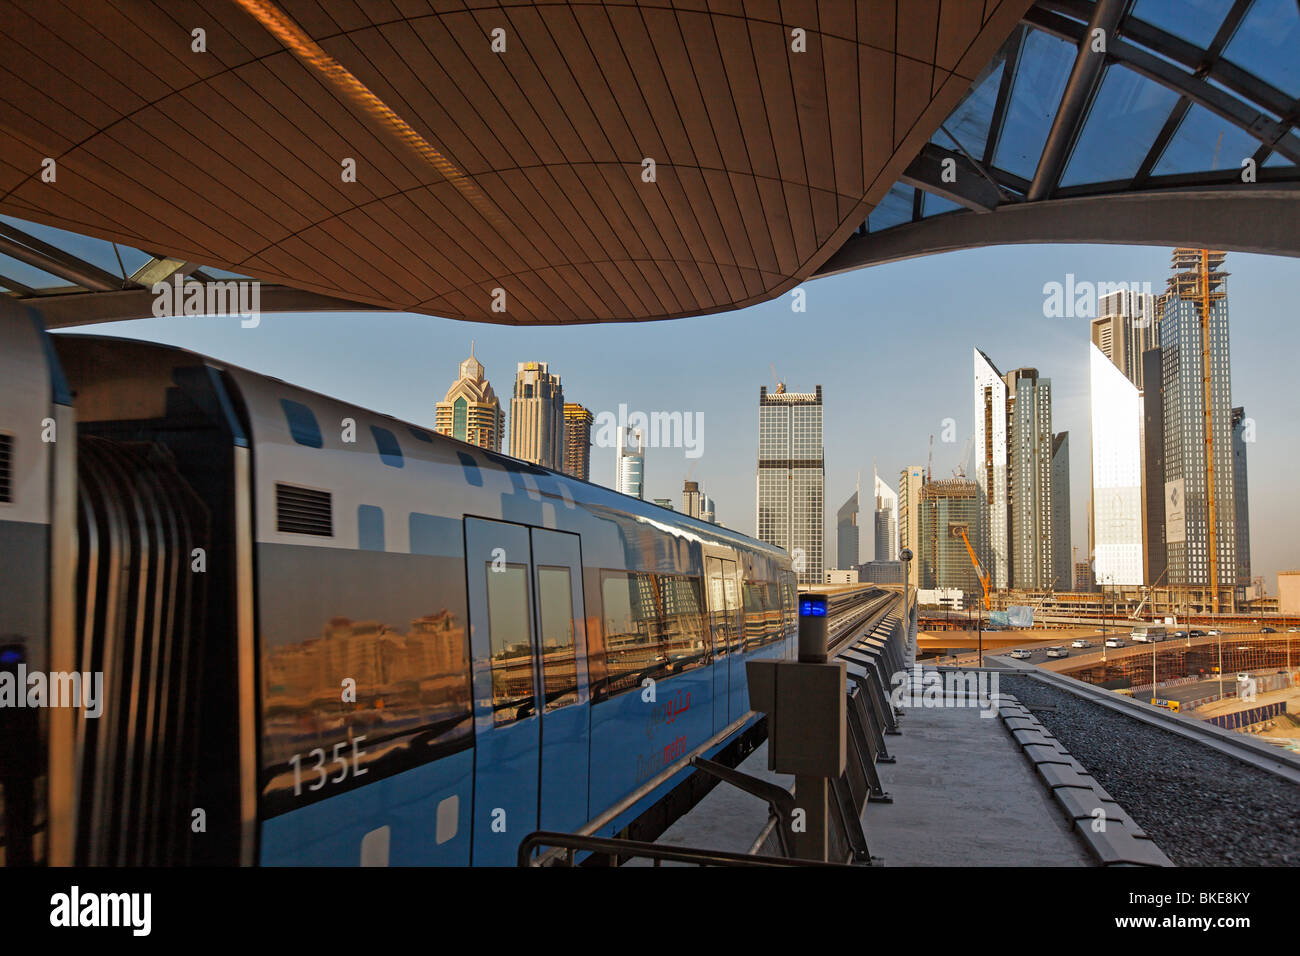 Downtown Dubai, new Metro line in front of Finance Center - Stock Image